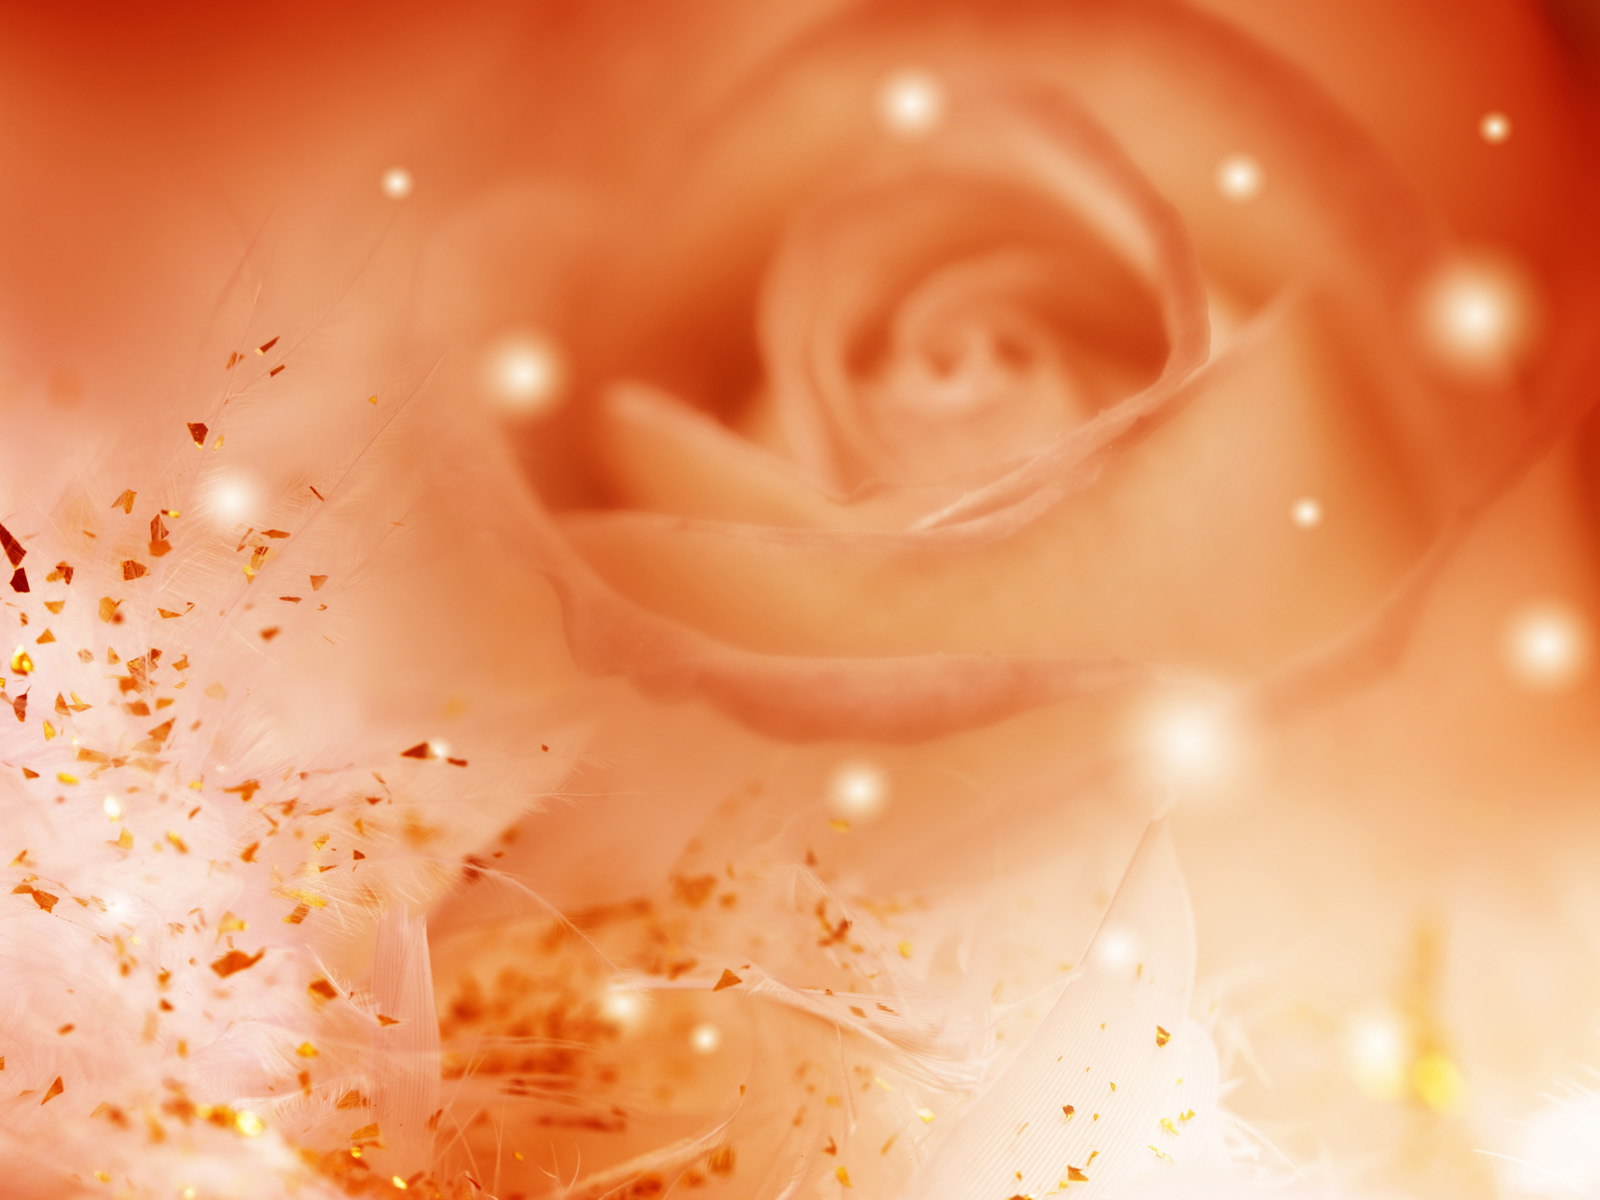 Flowers Images Orange Roses Hd Wallpaper And Background Photos